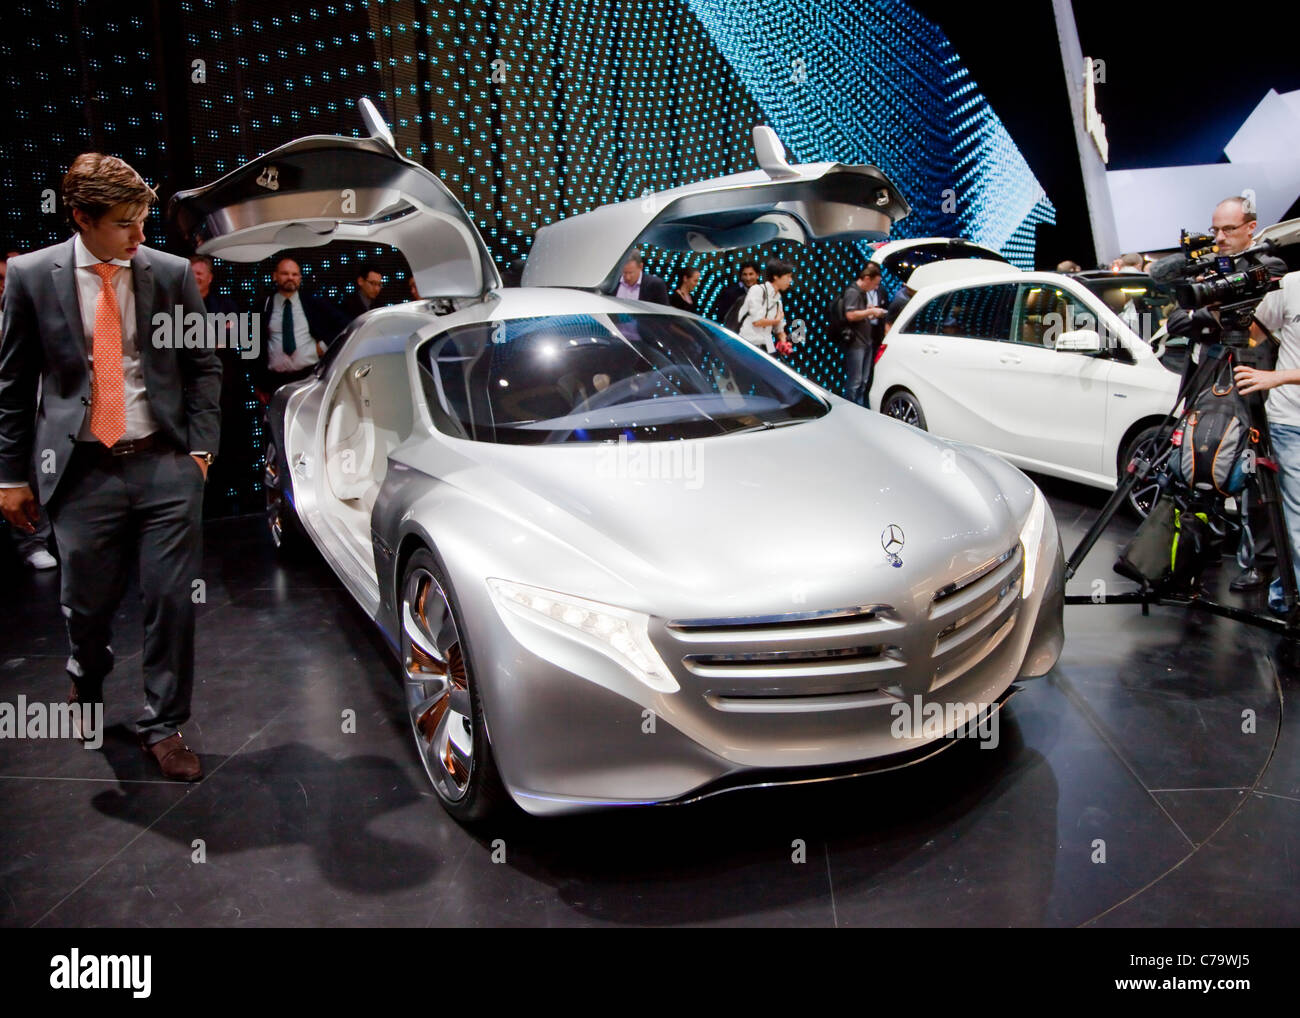 New Mercedes Benz Concept Car F125 on the IAA 2011 International Motor Show Frankfurt, Germany Stock Photo